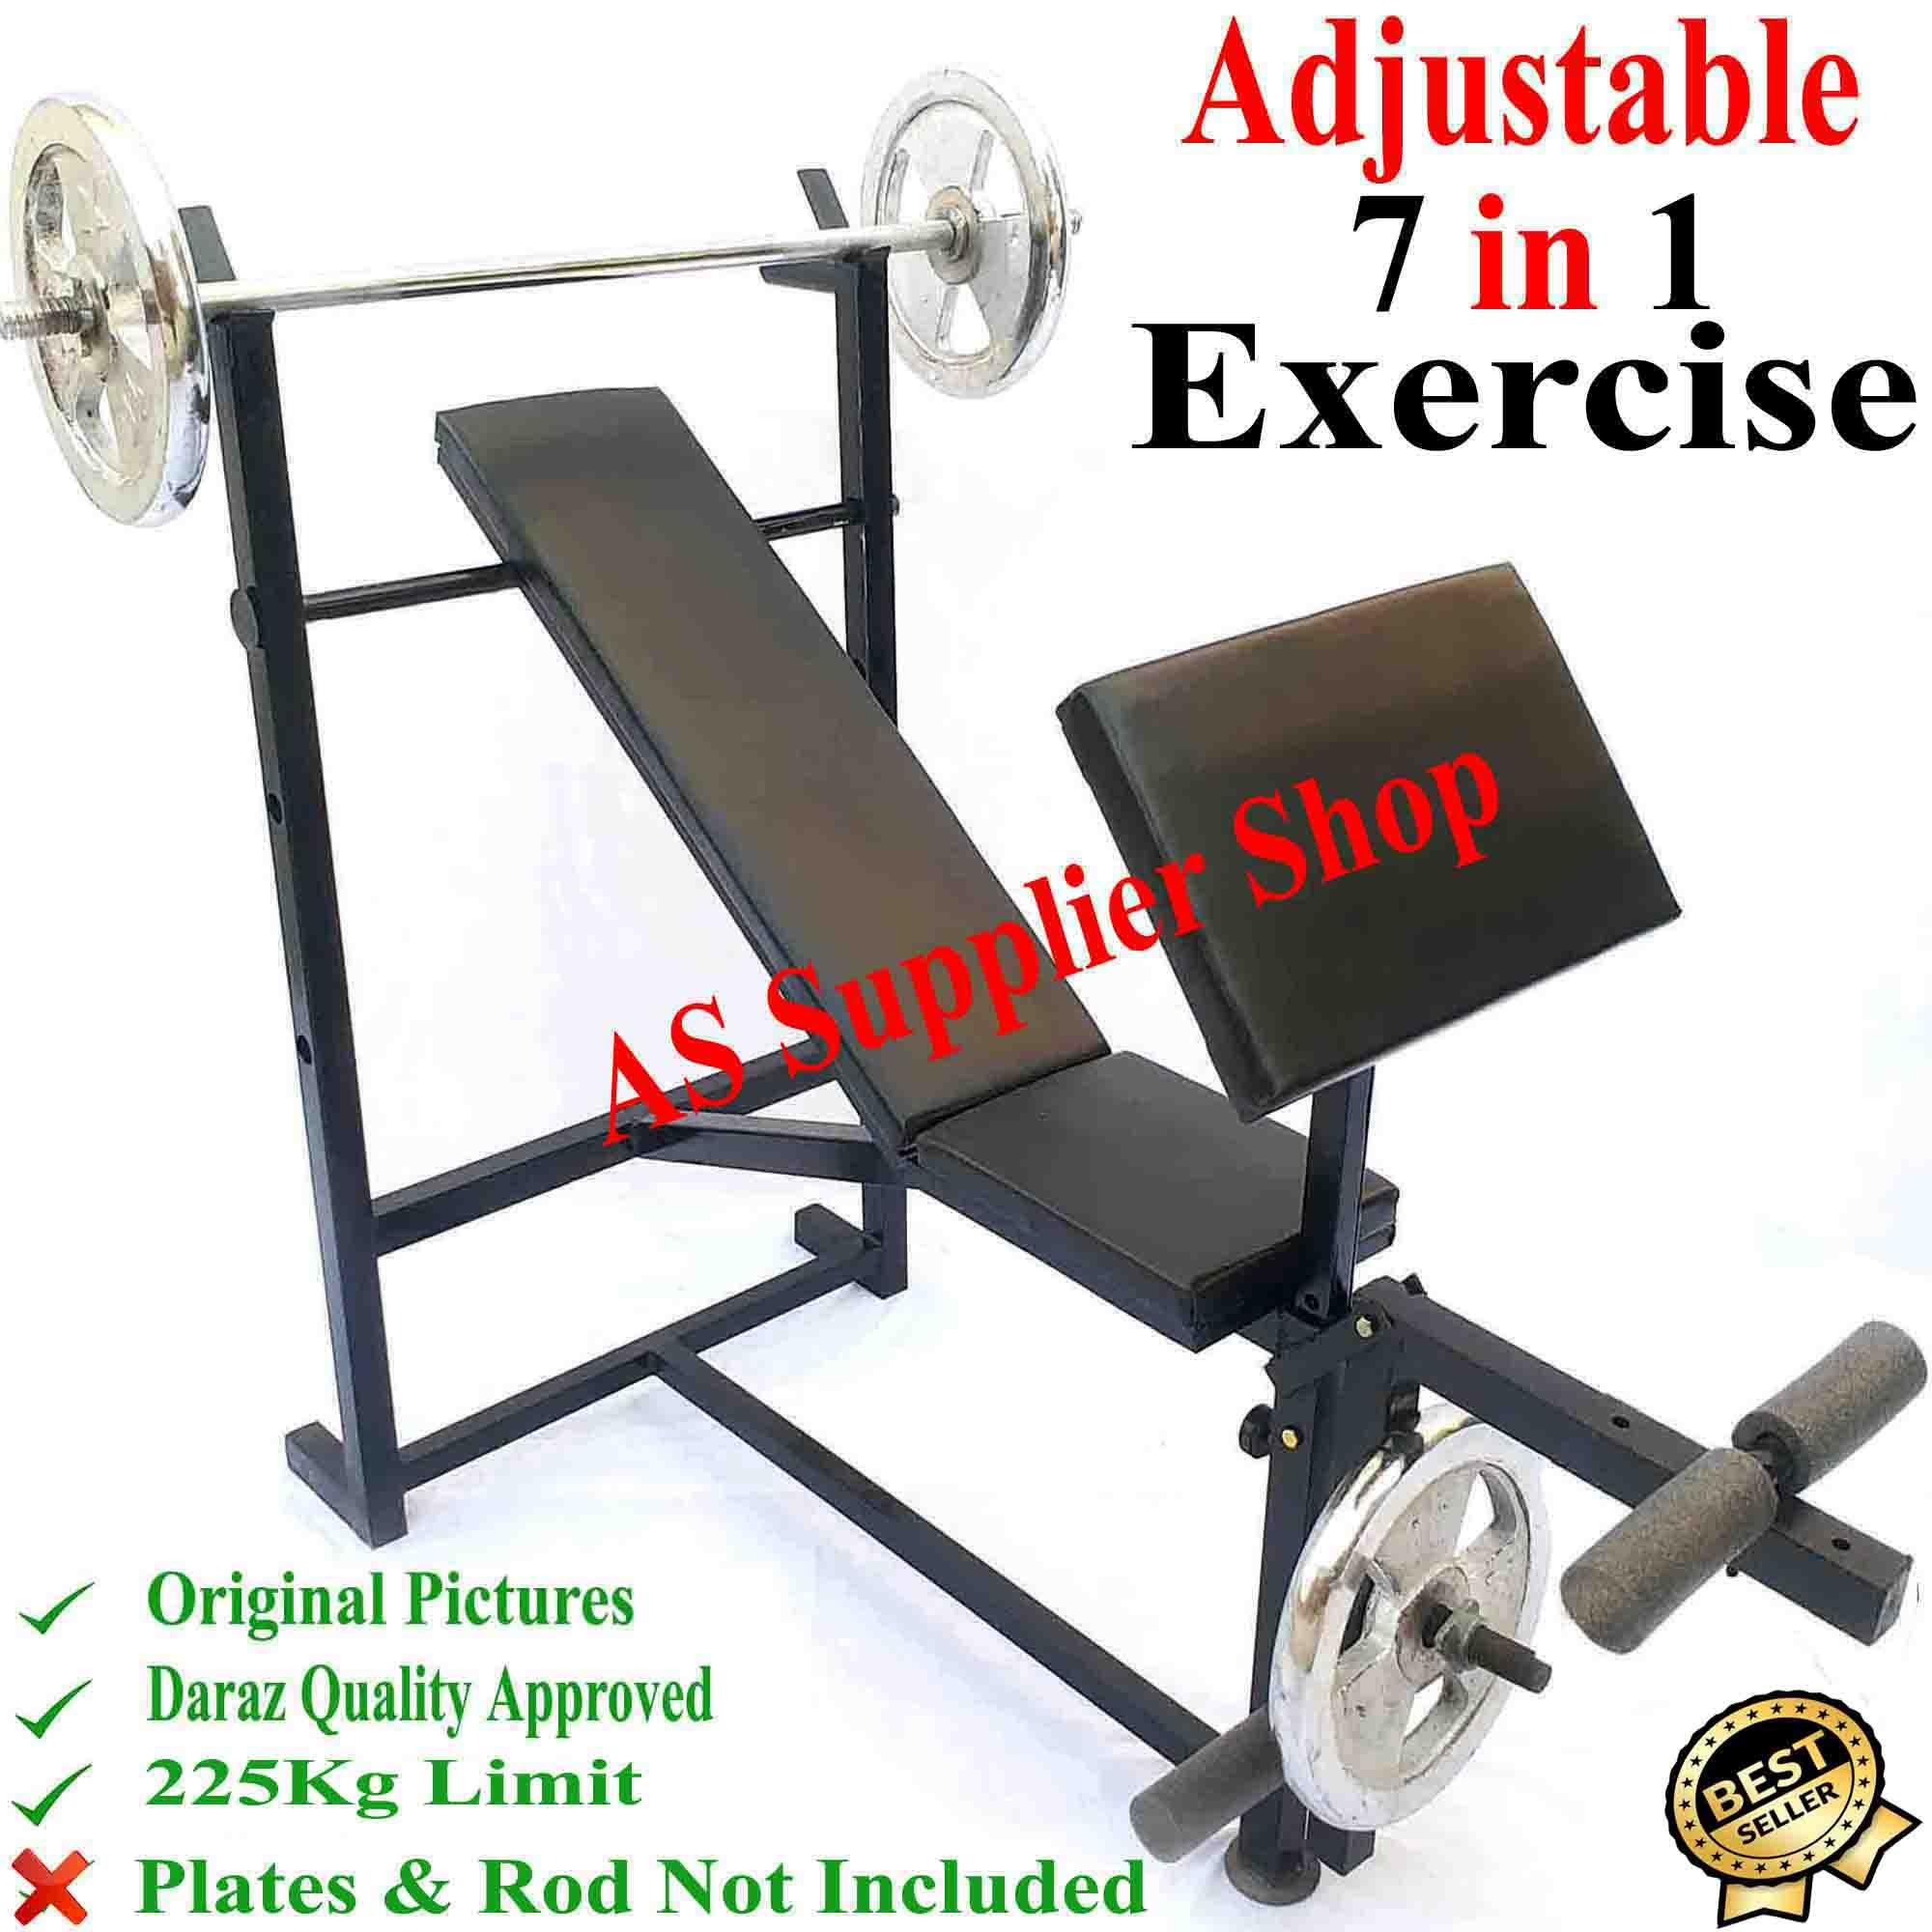 gym bench press chair plastic lawn chairs canada home equipments online in pakistan daraz pk best quality multi exercise adjustable chest incline decline straight flat leg biceps triceps